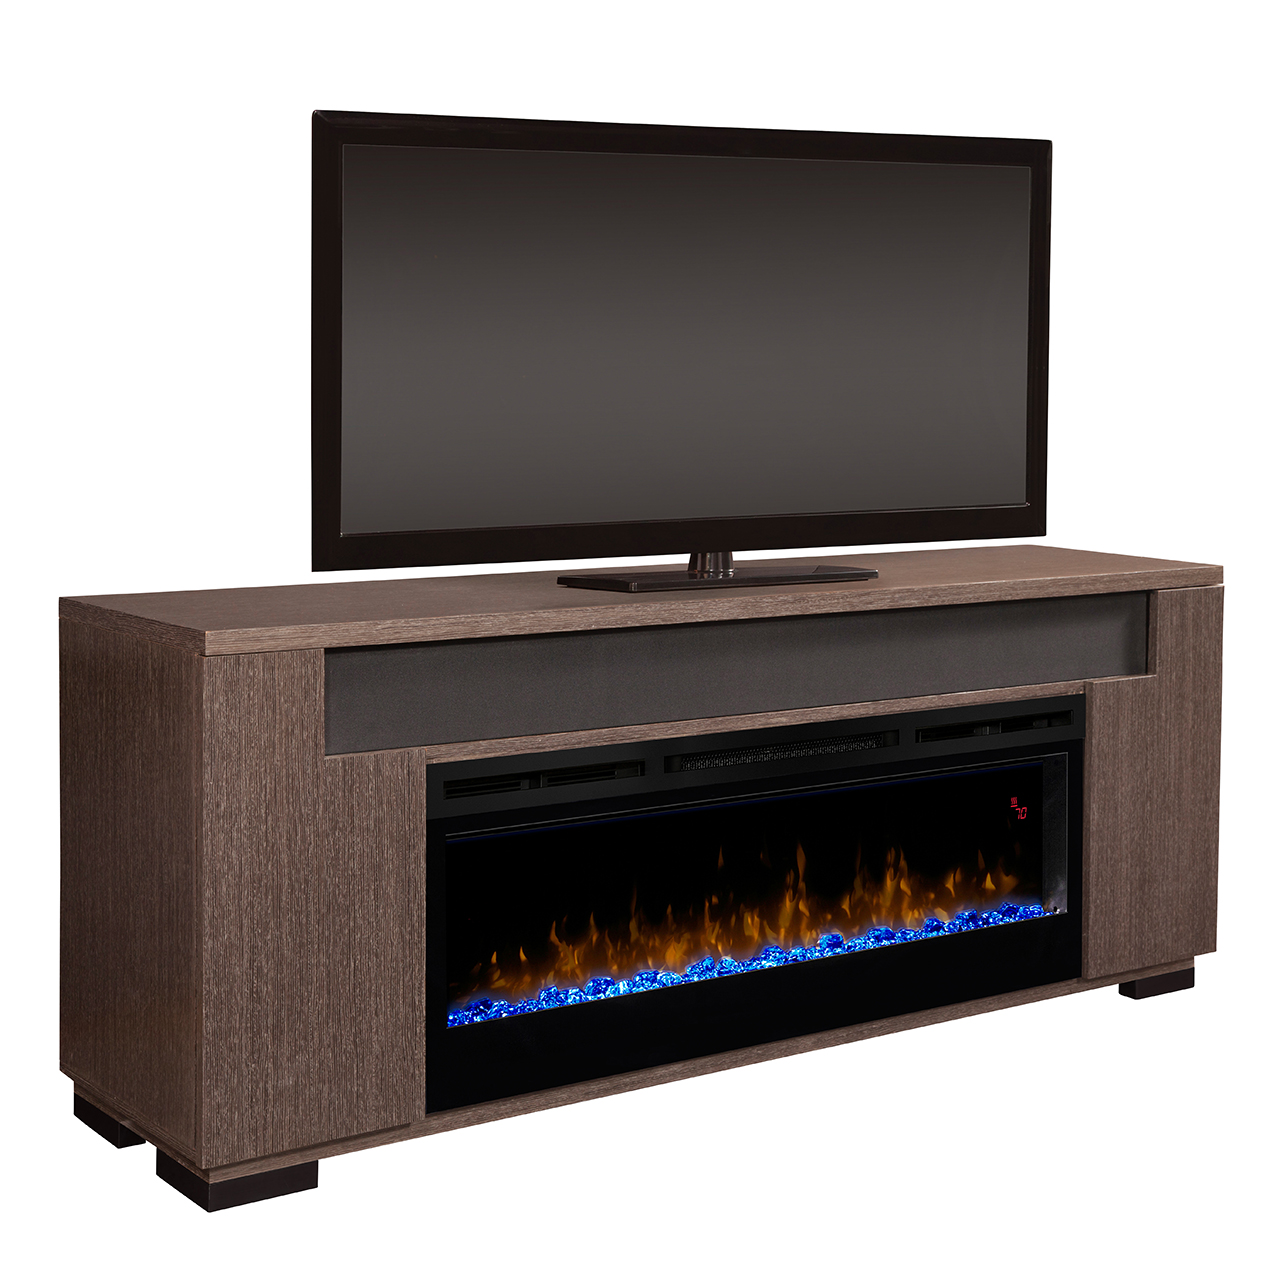 tv with console pacer new media fireplace multipurpose photos to click pictures change black june inspirational value inch stand of